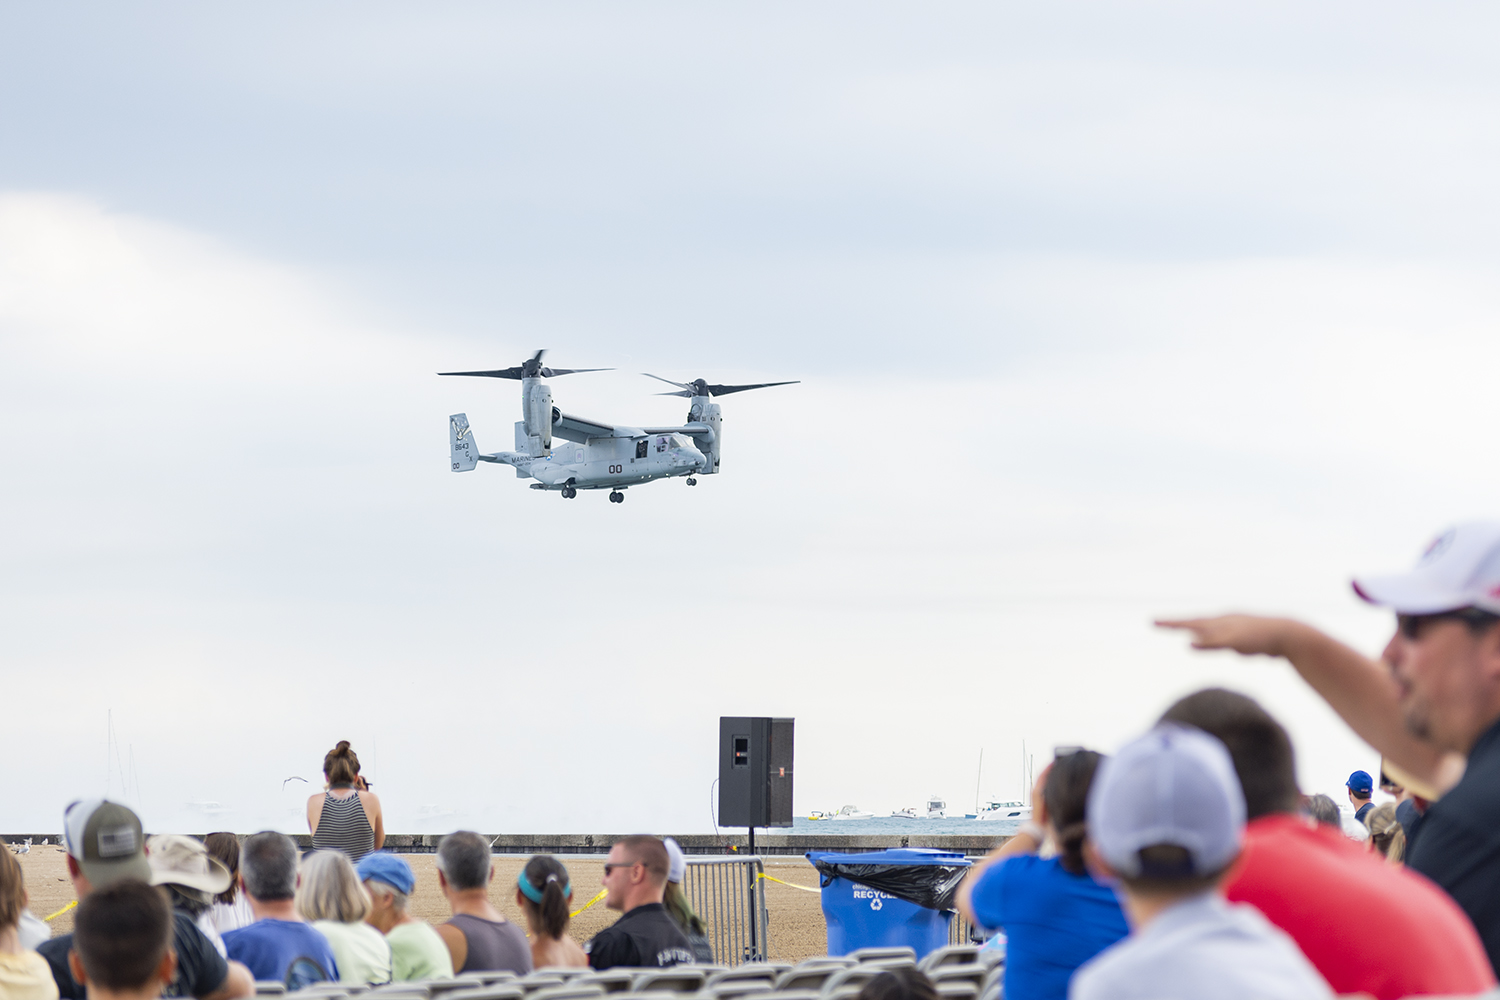 The+United+States+Marine+Corps+MV-22+Osprey+hovers+above+North+Avenue+Beach+at+the+61st+annual+Chicago+Air+and+Water+Show+Aug.+17.